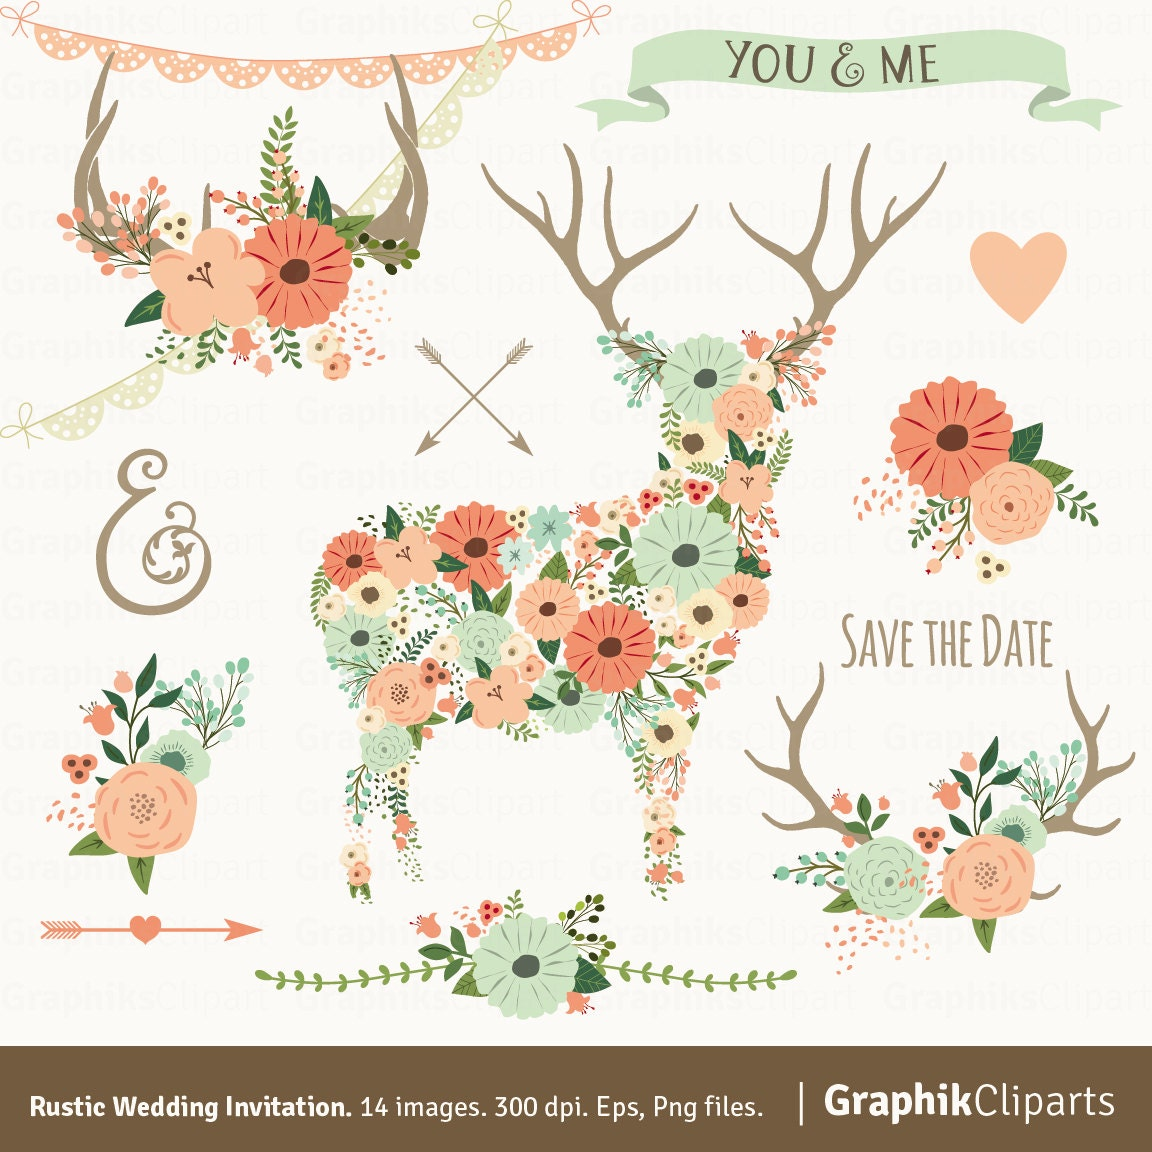 Rustic Wedding Invitation Flower Vectors Floral Antlers Deer Spring 14 Images 300 Dpi Eps Png Files Instant Download